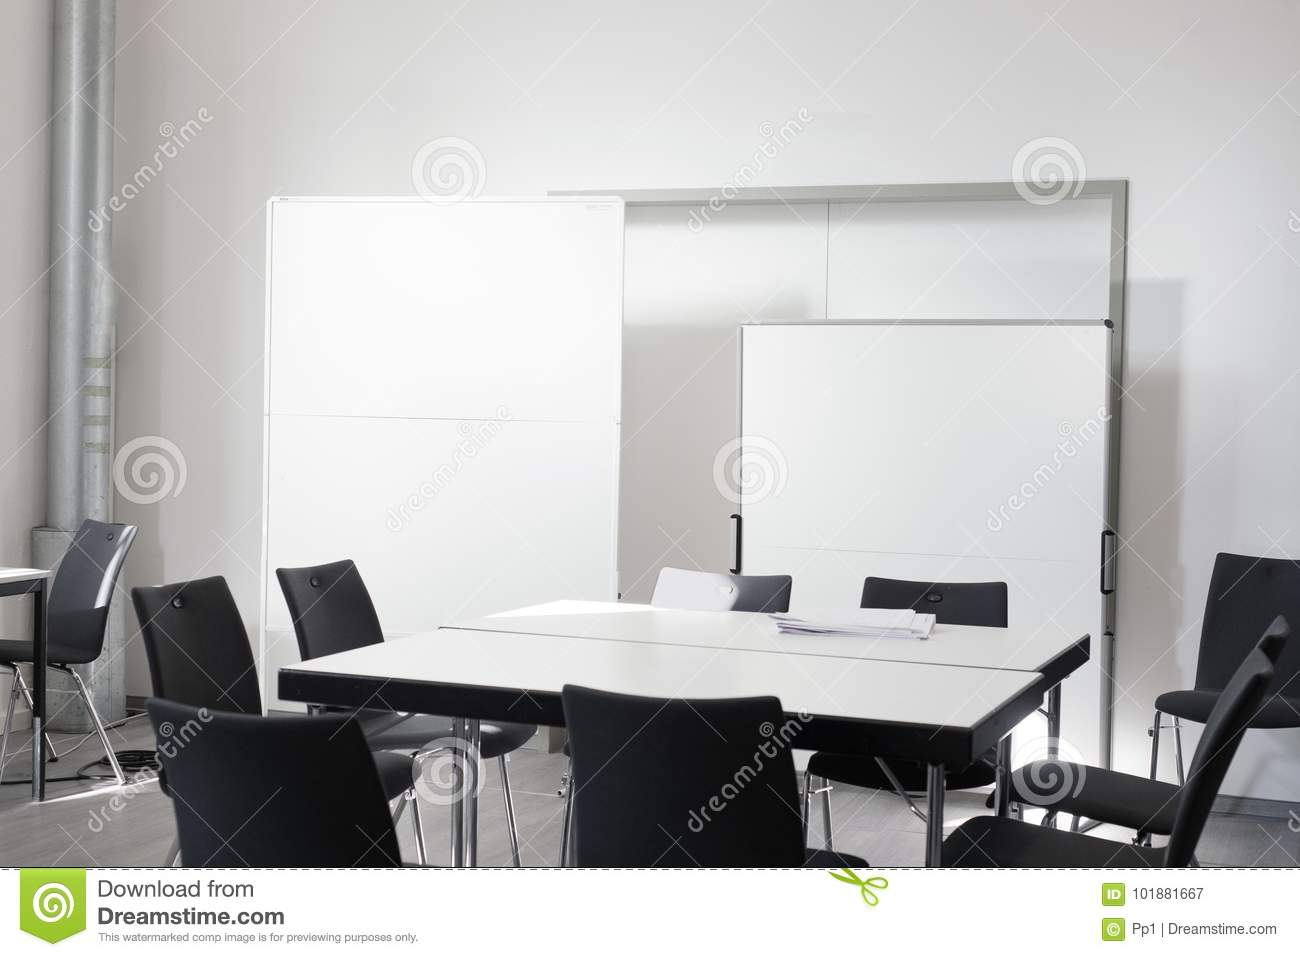 Empty Office Meeting Room With Chair Table White Board Stock Image